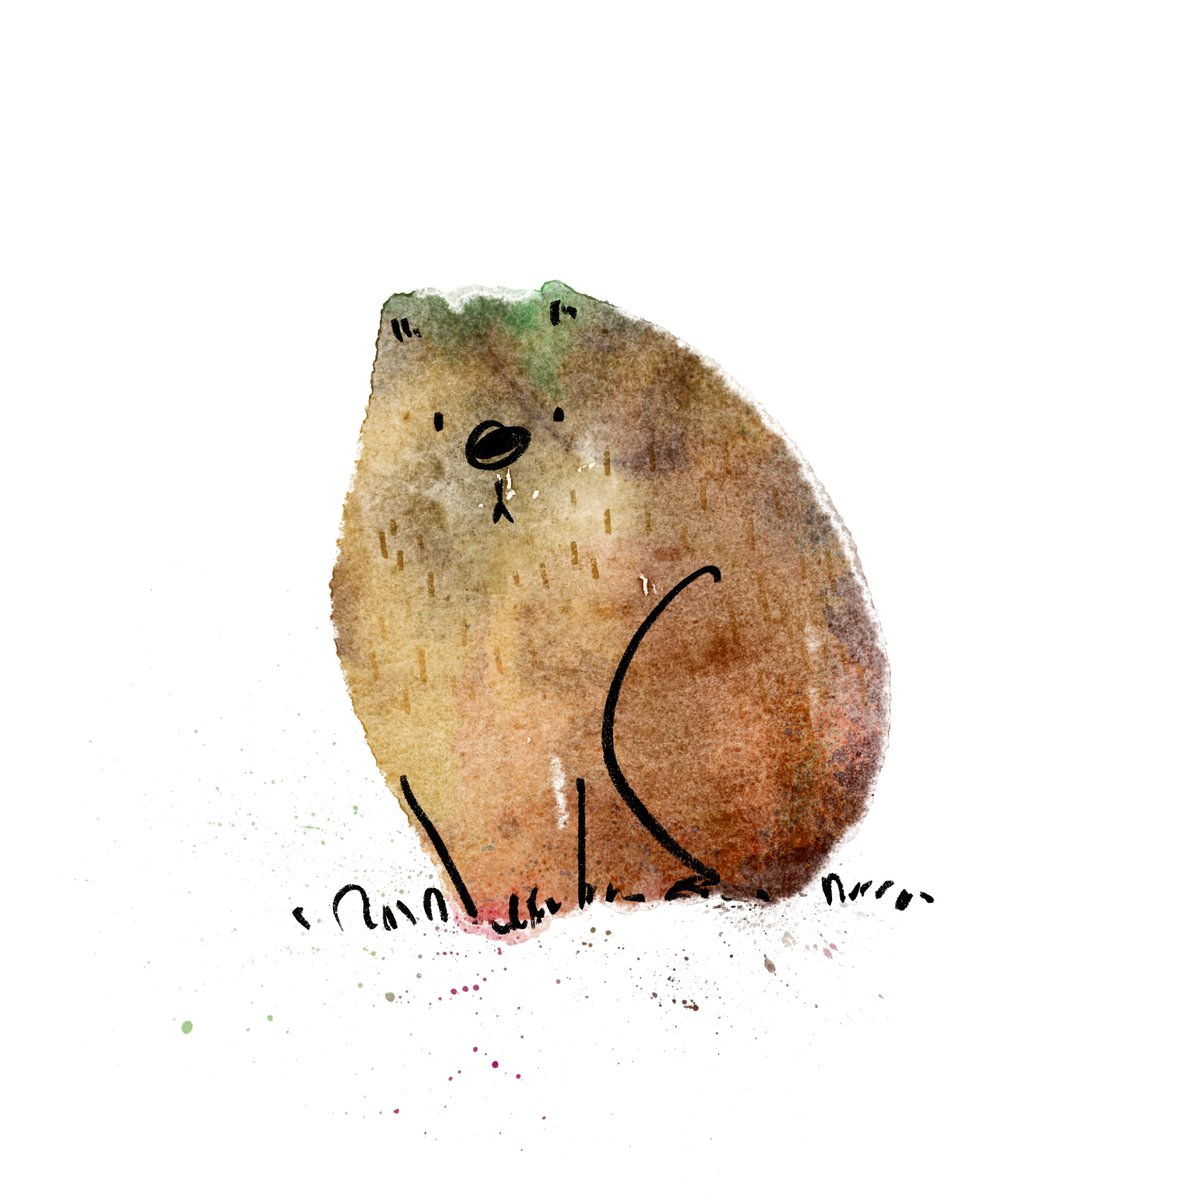 RT <a target='_blank' href='http://twitter.com/Jess_Keating'>@Jess_Keating</a>: Turning watercolor blobs to bears. 🐻 <a target='_blank' href='https://t.co/eqbGBiqPpk'>https://t.co/eqbGBiqPpk</a>